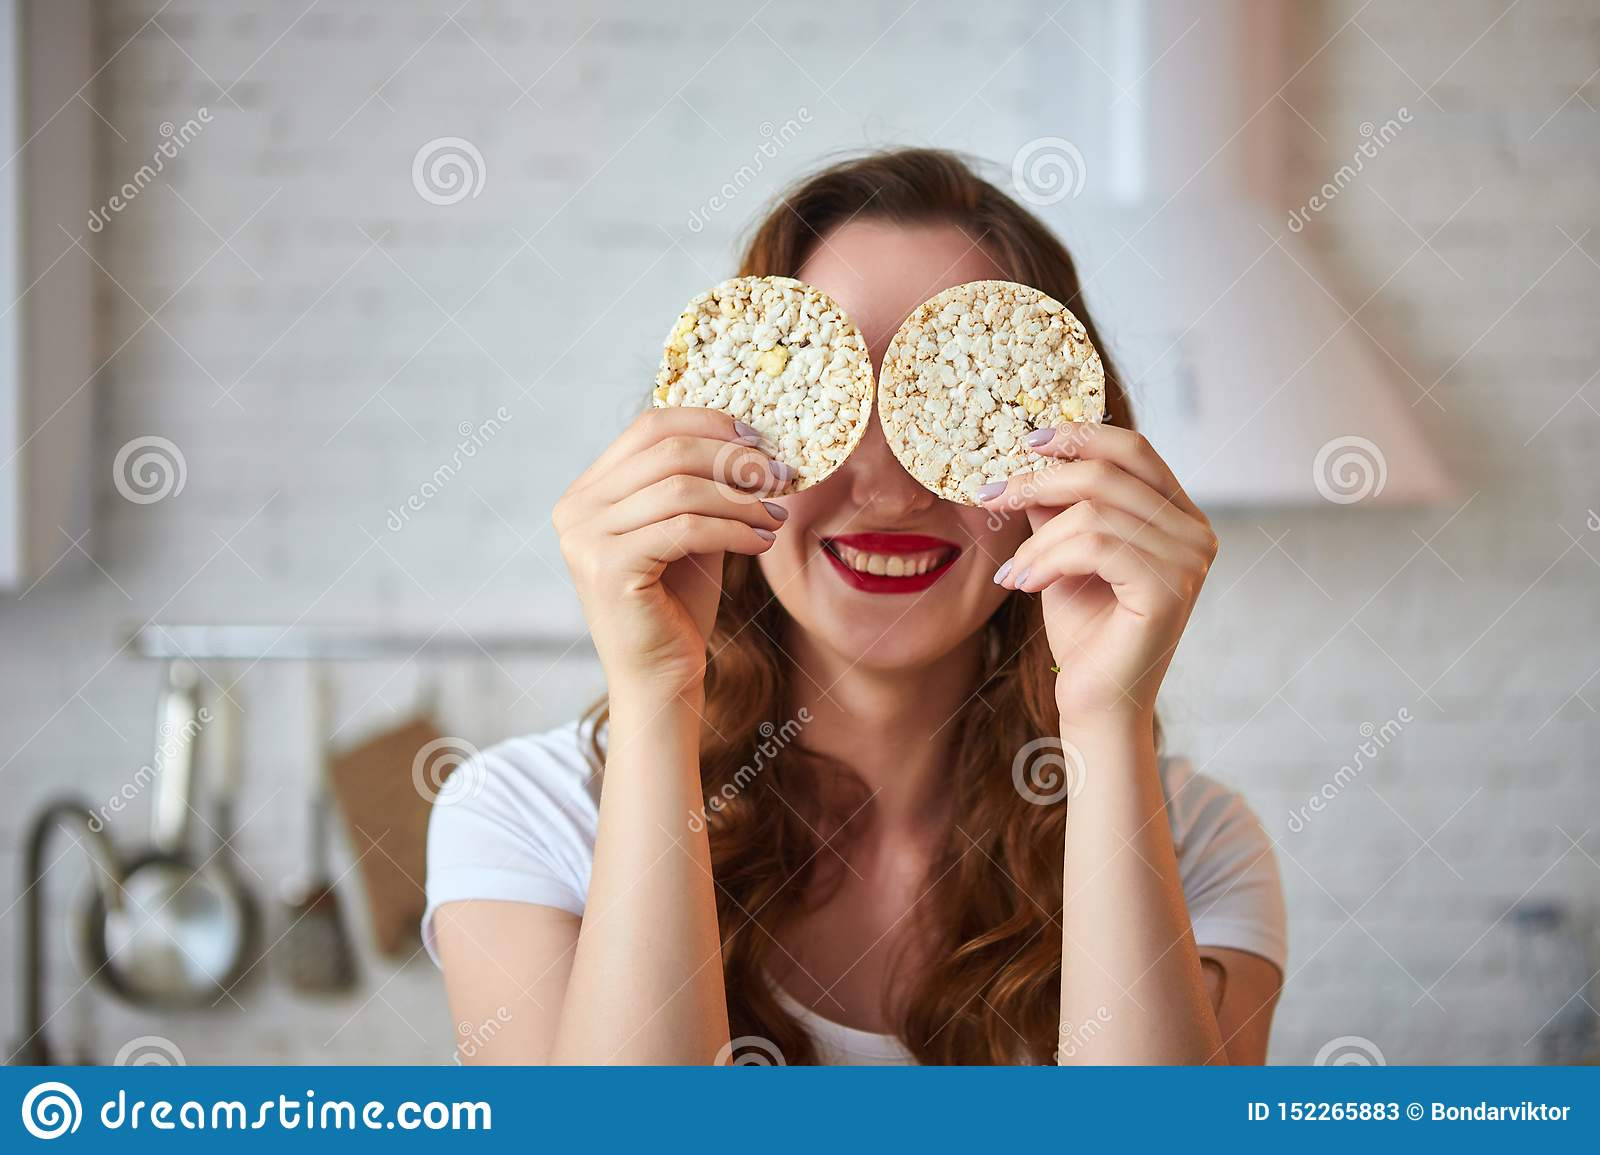 Young woman eating rye cracker crisp bread in the kitchen. Healthy Lifestyle. Health, Beauty, Diet Concept